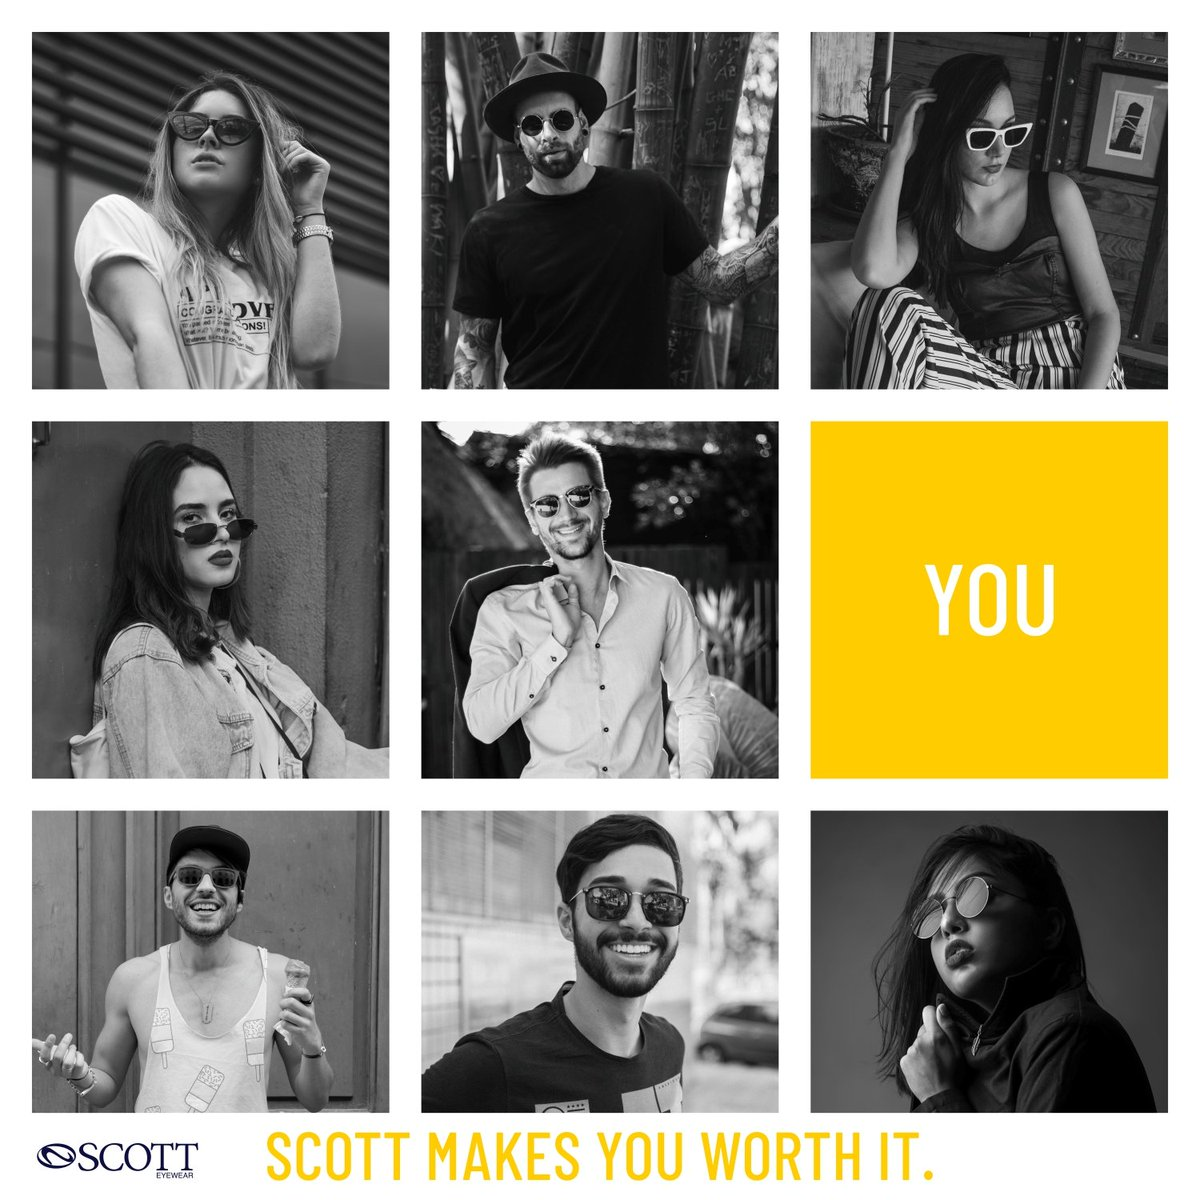 No matter what's your story.  No matter who you are. Some moments in life which define us.  It's about being YOU. Make it count with your favourite Scott sunnies! #ScottSunnies #ISeeYou #Spotted #Fun #ScottFamily #SpotTheScott #BondOverScott #AnilKapoor #SonamKapoor #scotteyewear